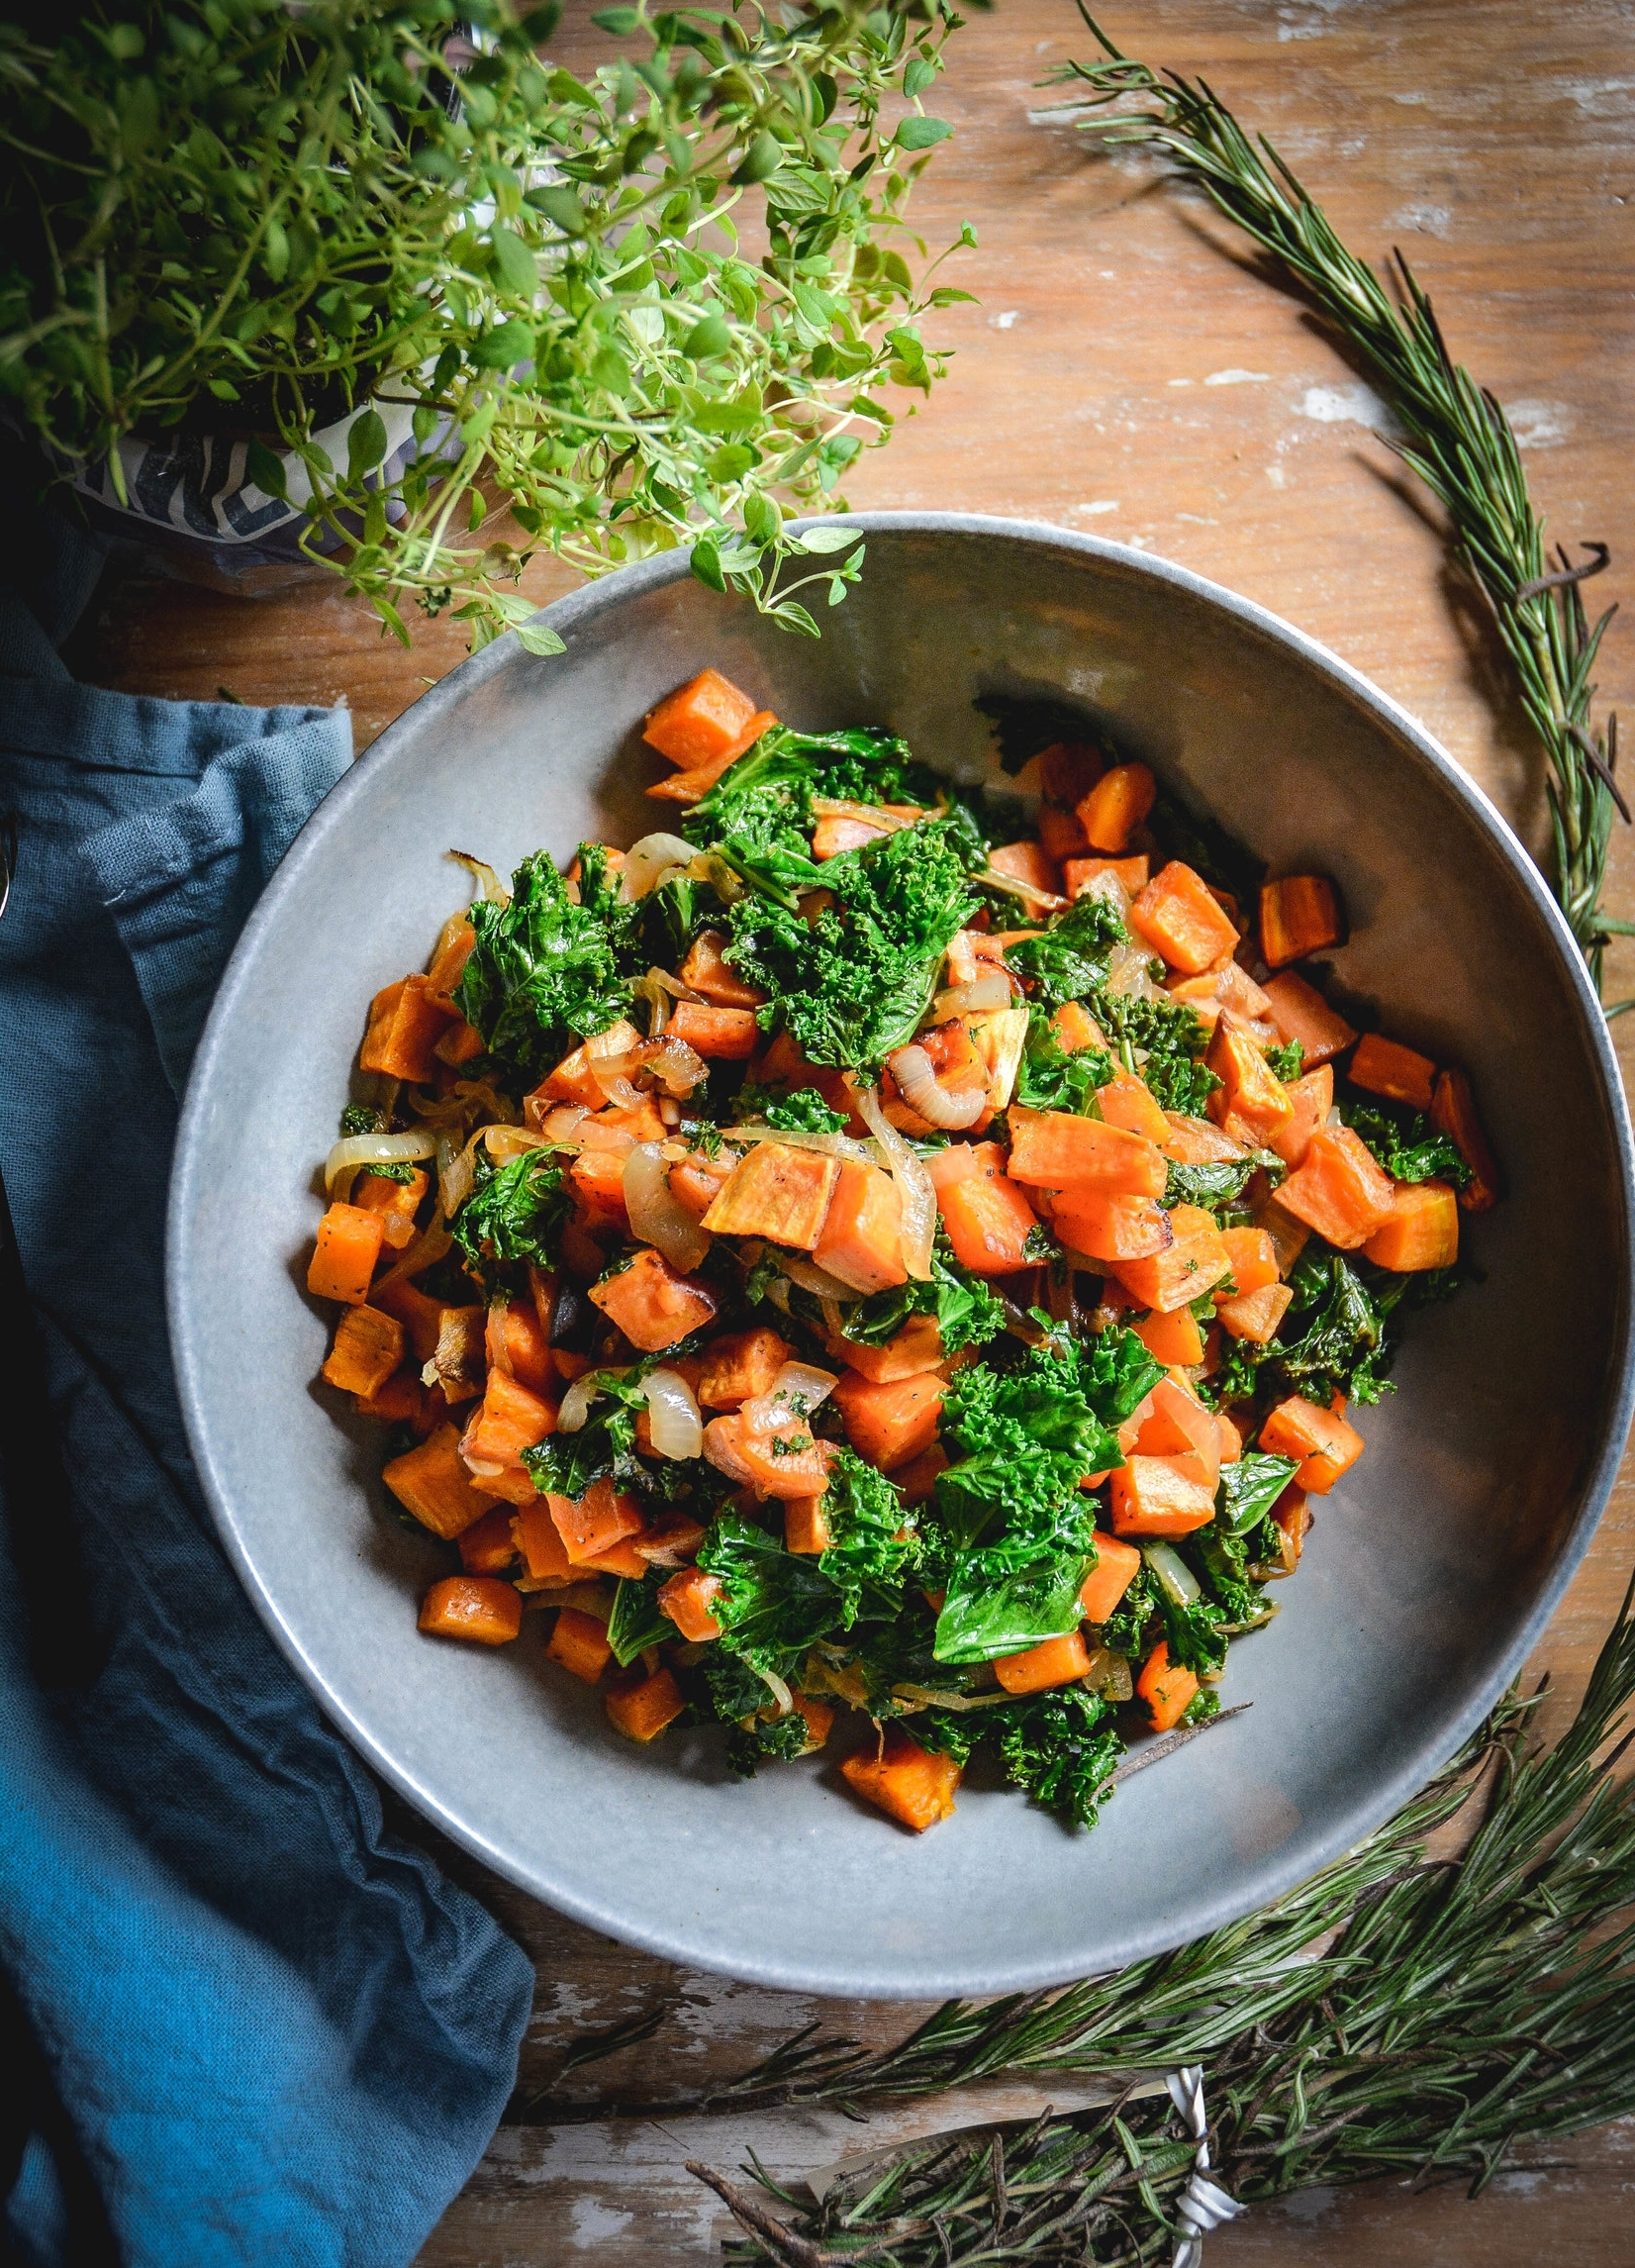 sweet potatoes with kale in large bowl on table with thyme and rosemary